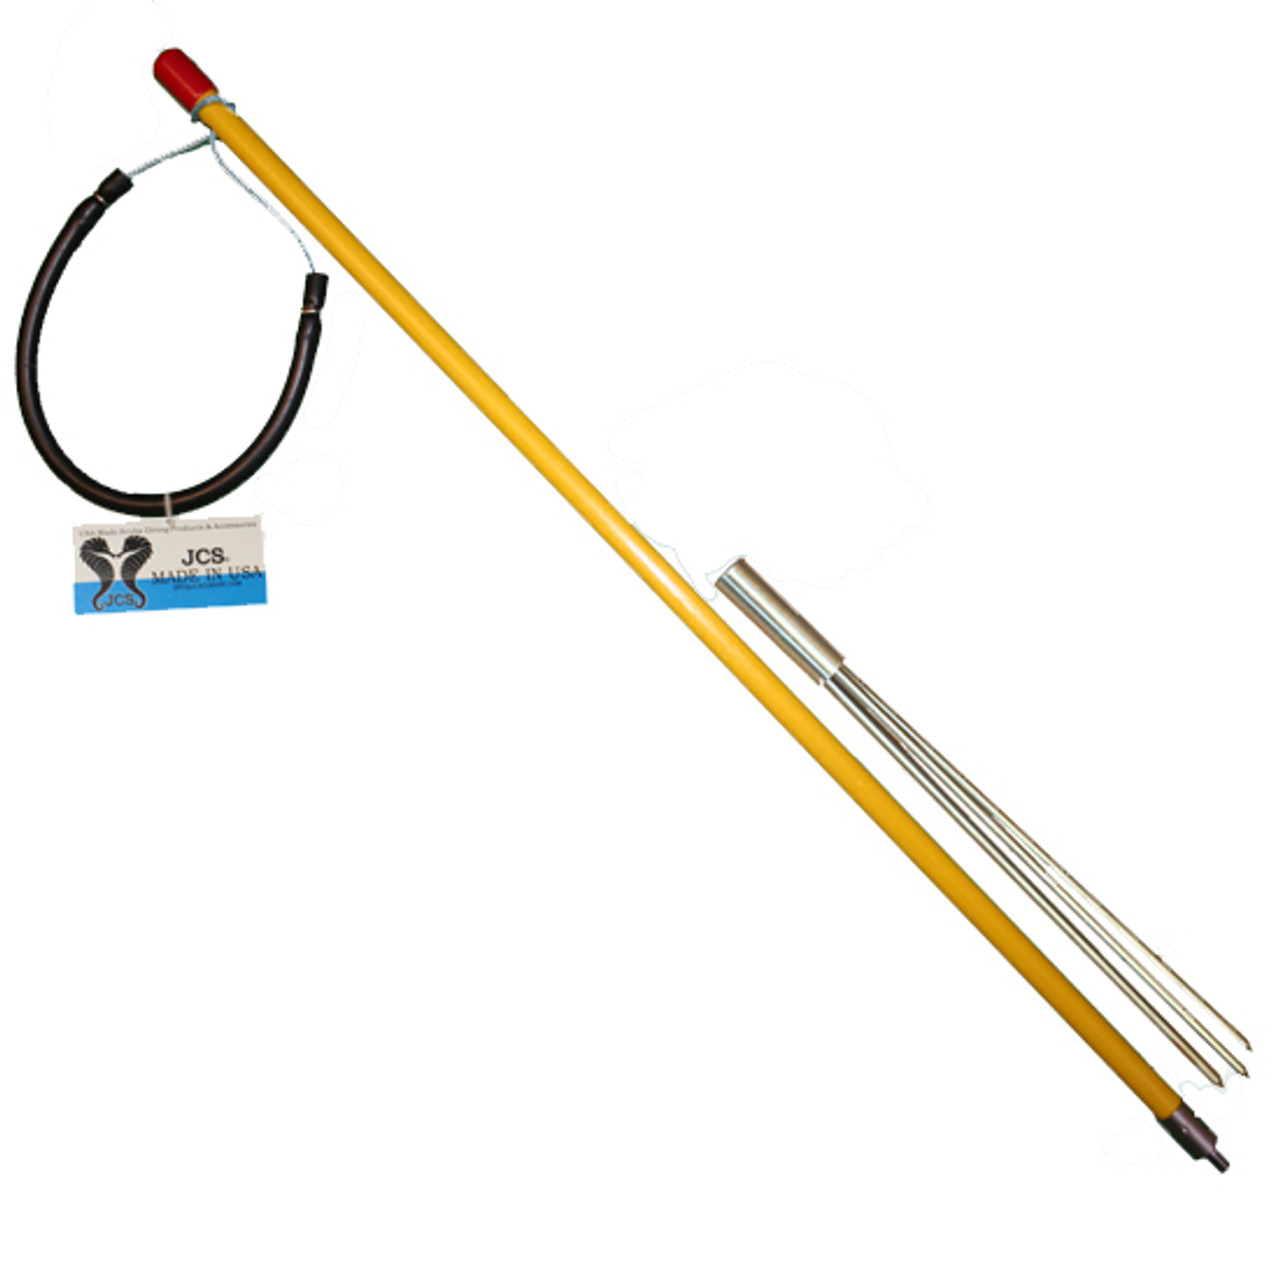 Take-Apart Includes Changeable Paralyzer Spear Head - Perfect for Travel. 3 Piece Pole Spear /& Nylon Carrying Bag. JCS Fiberglass